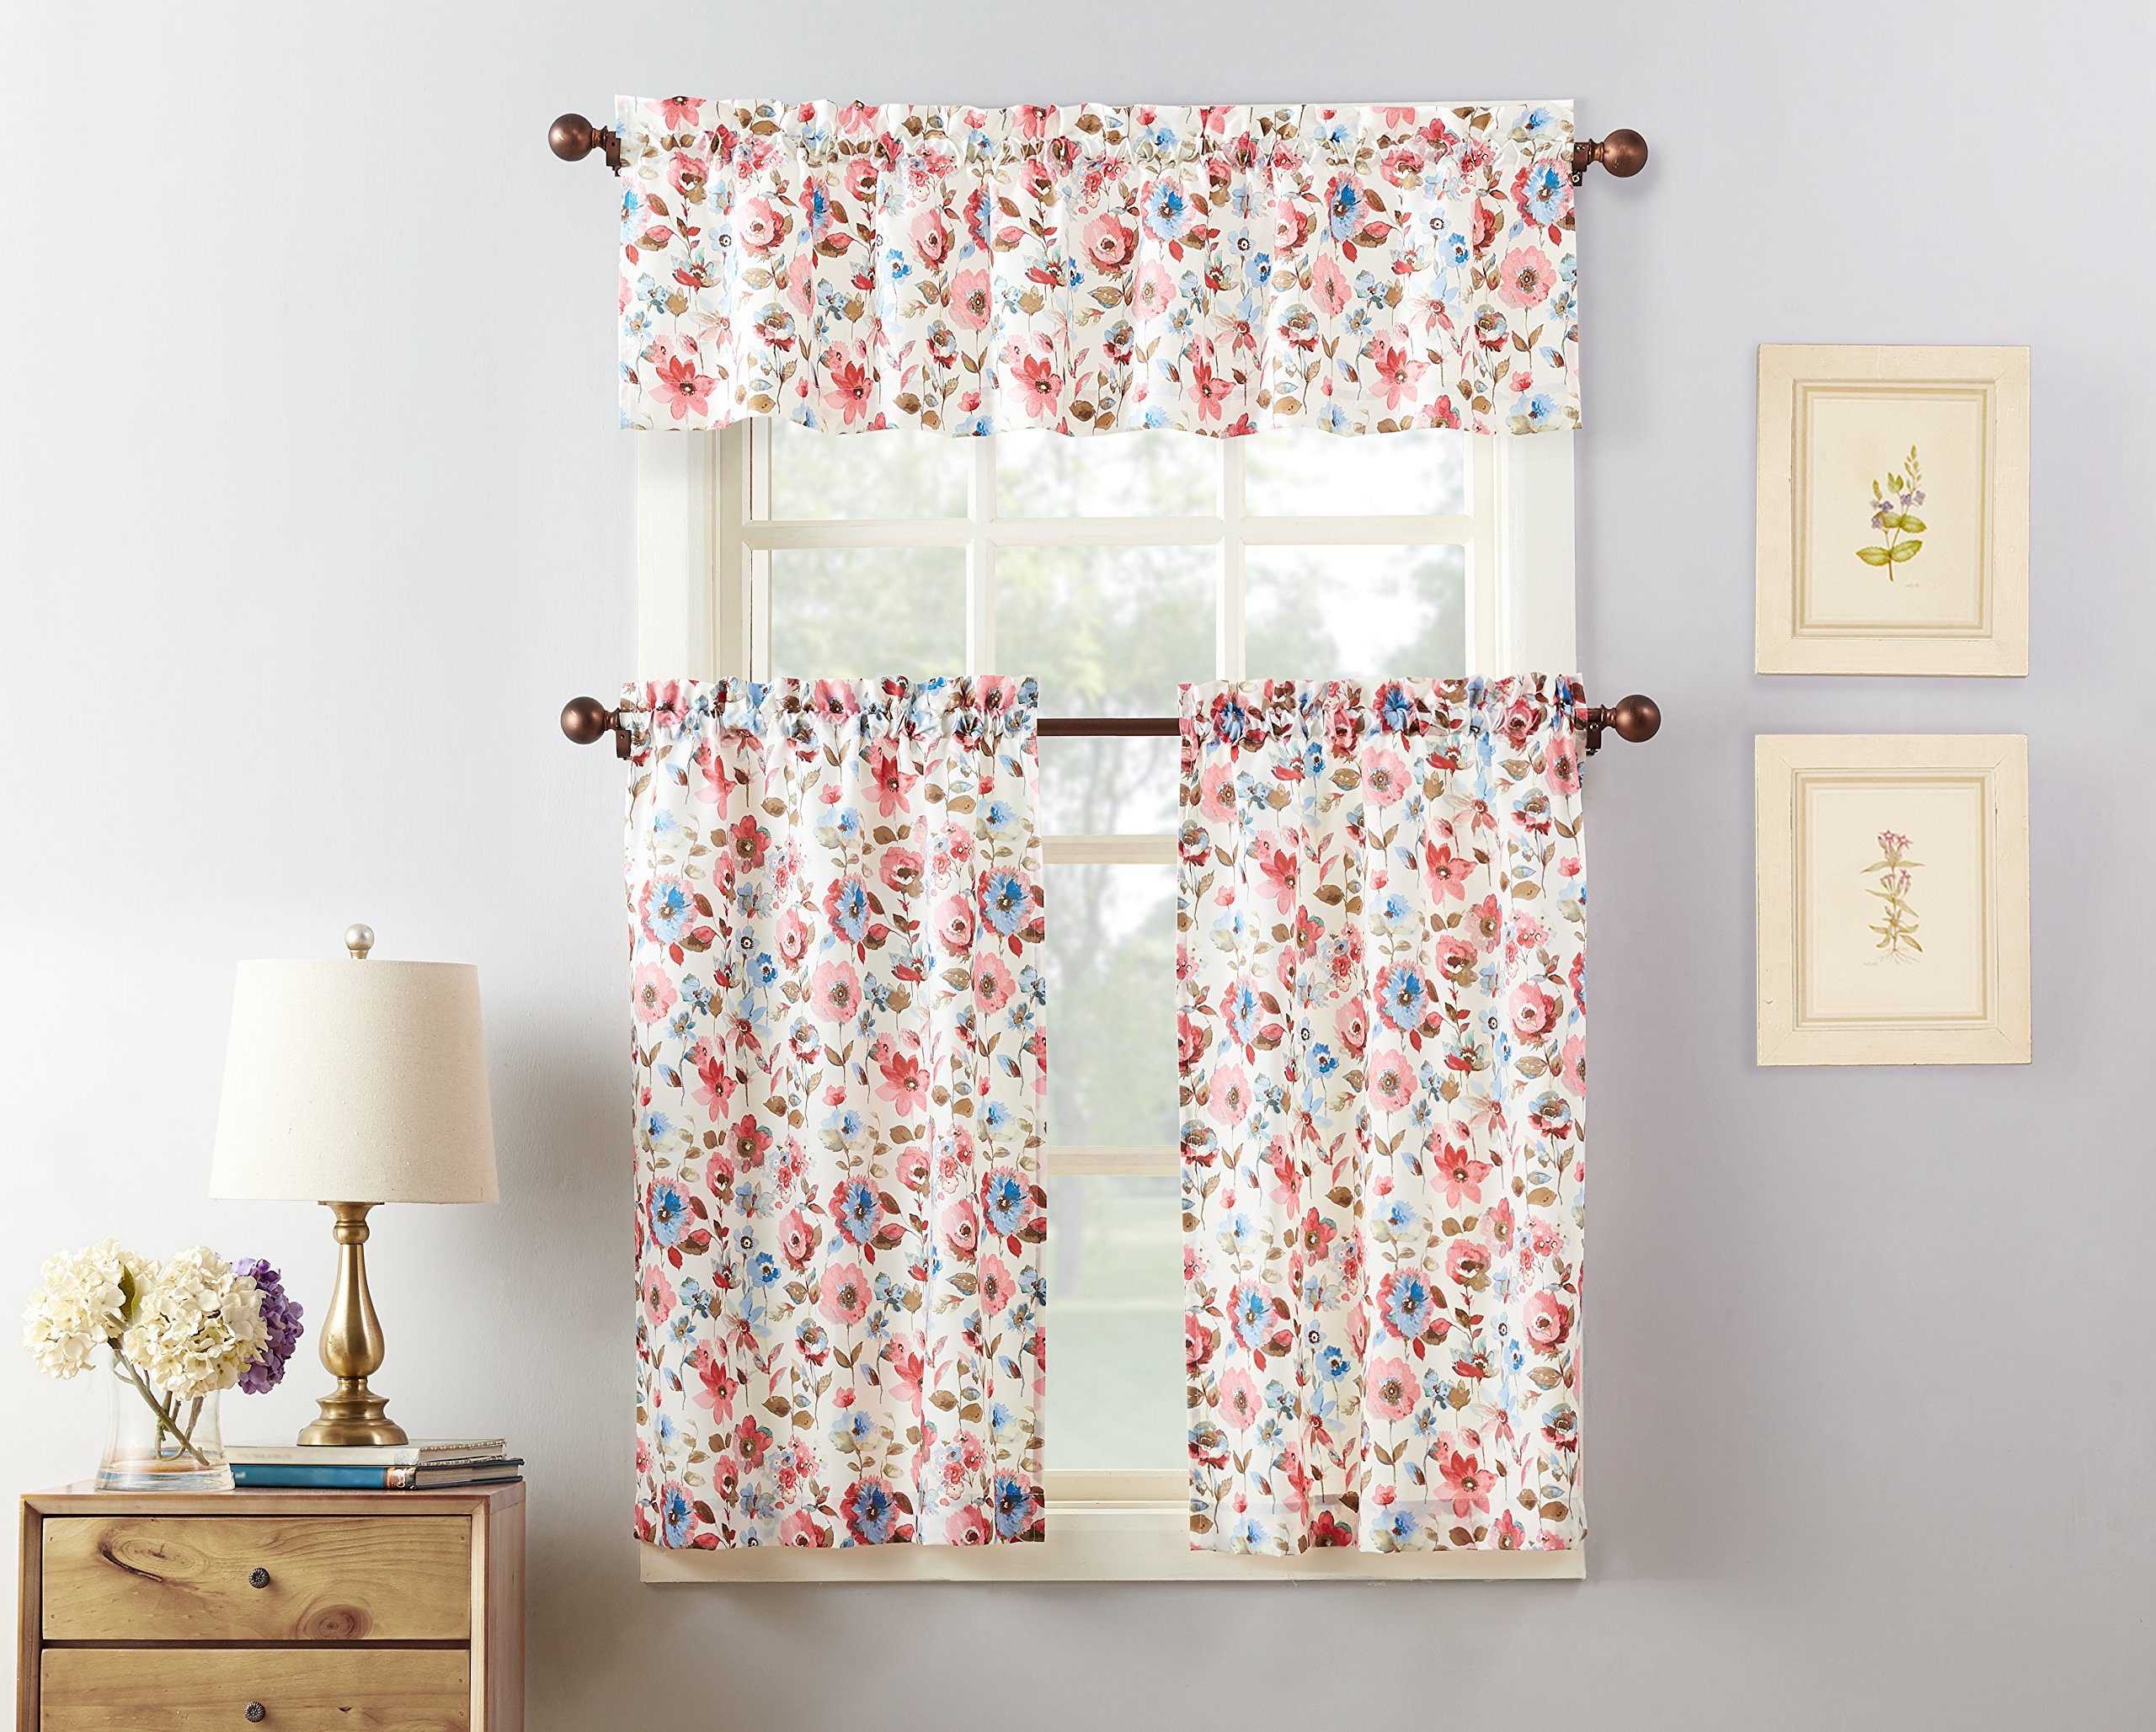 "Fashionable Details About No. 918 Dora Floral Microfiber 3 Piece Kitchen Curtain Set,  54"" X 36"", Coral Regarding Microfiber 3 Piece Kitchen Curtain Valance And Tiers Sets (Gallery 4 of 20)"